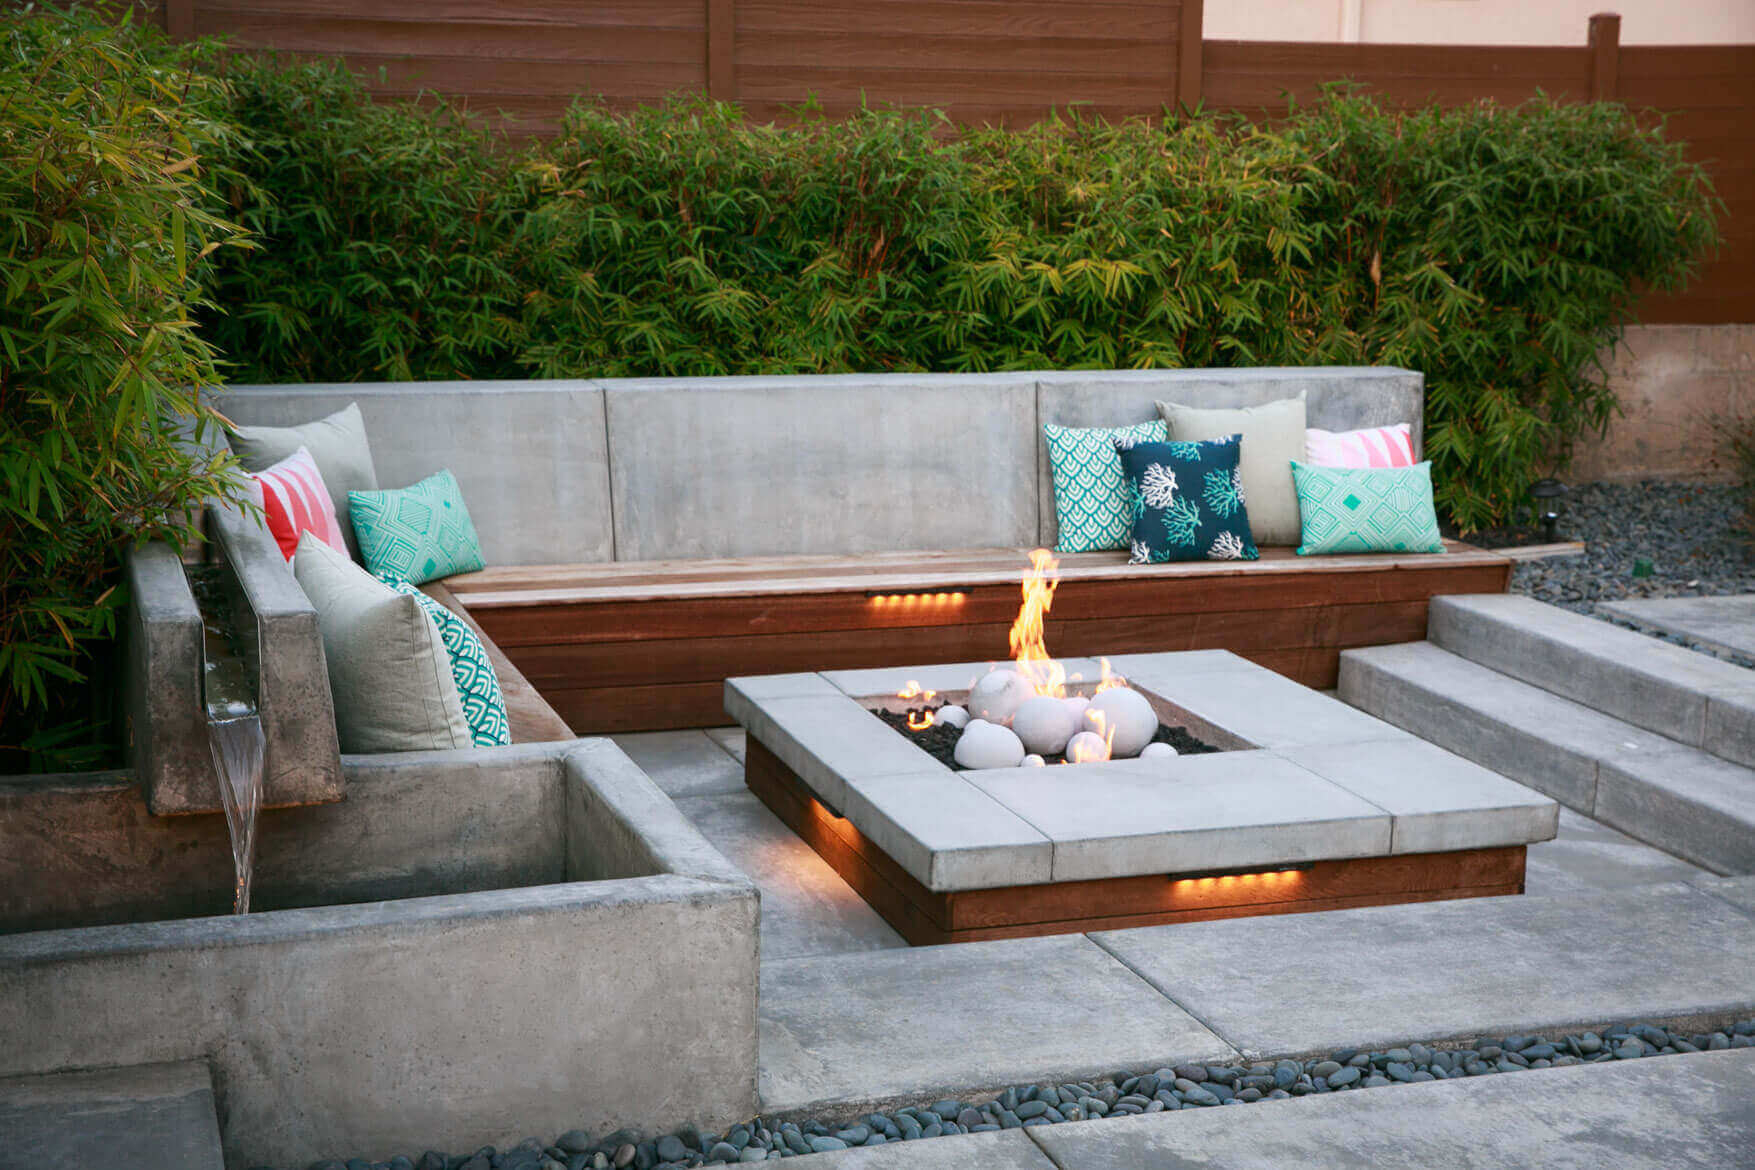 Fire Pit Outdoor Water Features Backyard Design Hardscaping In throughout dimensions 1755 X 1170